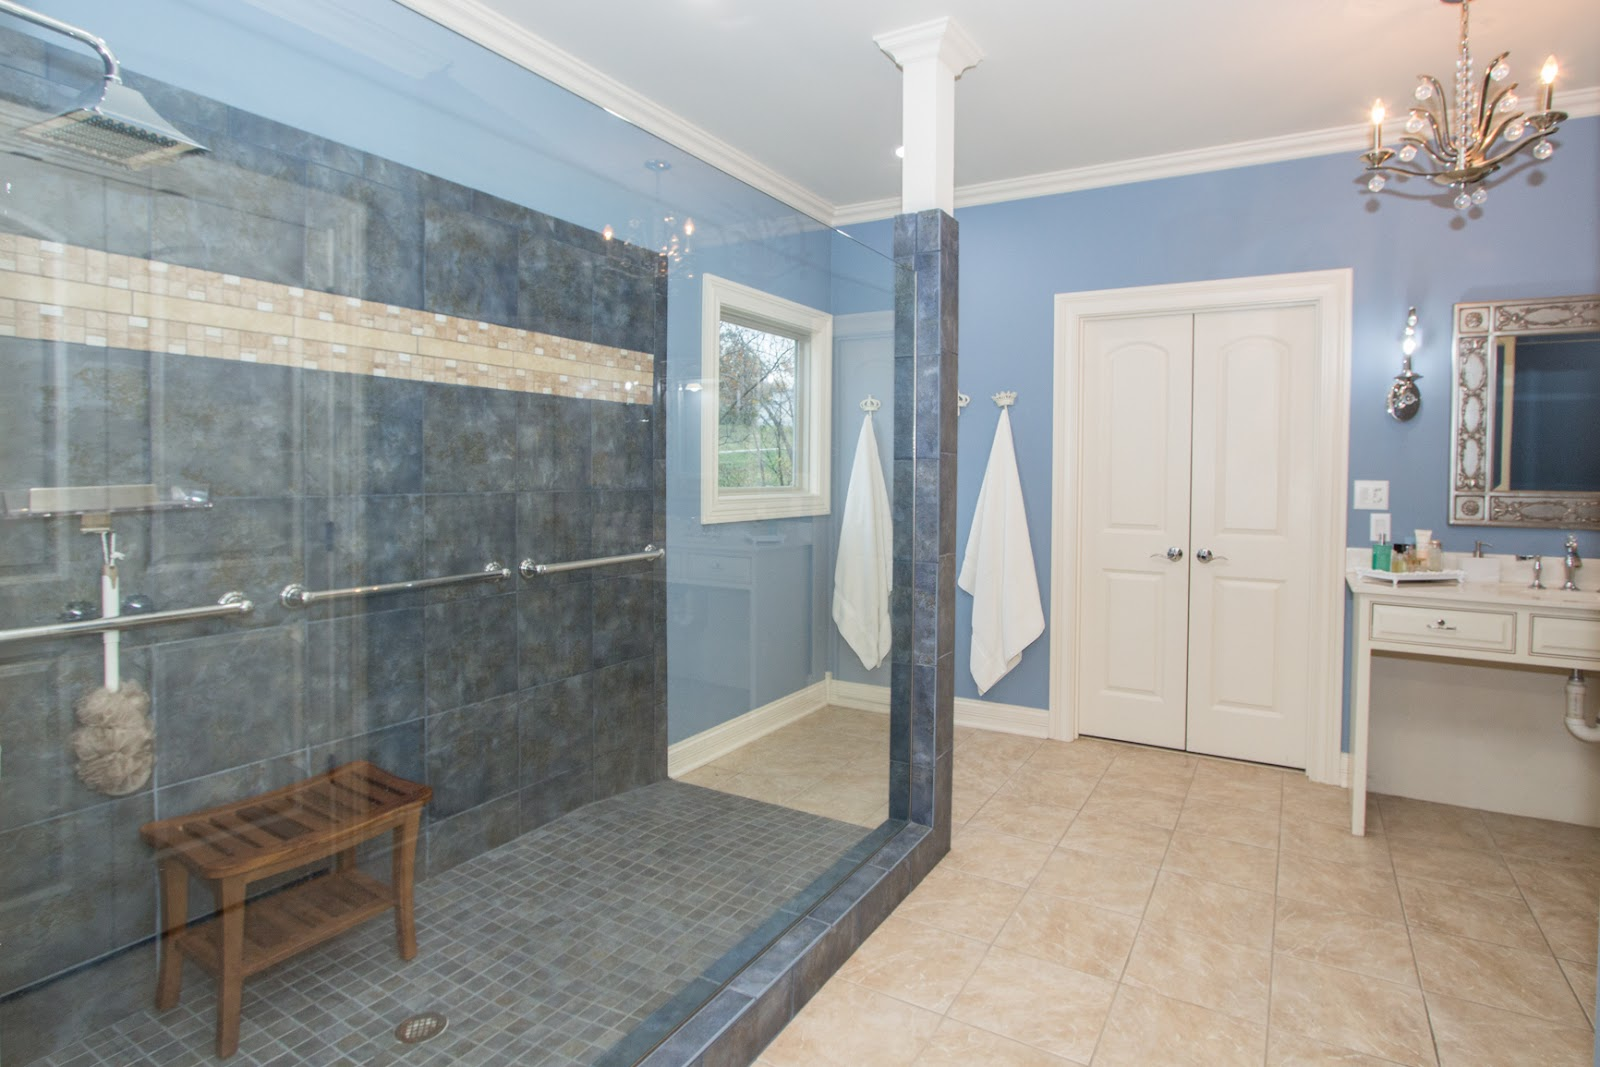 Great zero entry shower in spa like Master Bath! Bath also features two vanities and walk in closet.  A must see!! This large shower is in 10901 Jordain Drive, Louisville, KY. 40241, currently listed by Pam Ruckriegel 502-435-5524